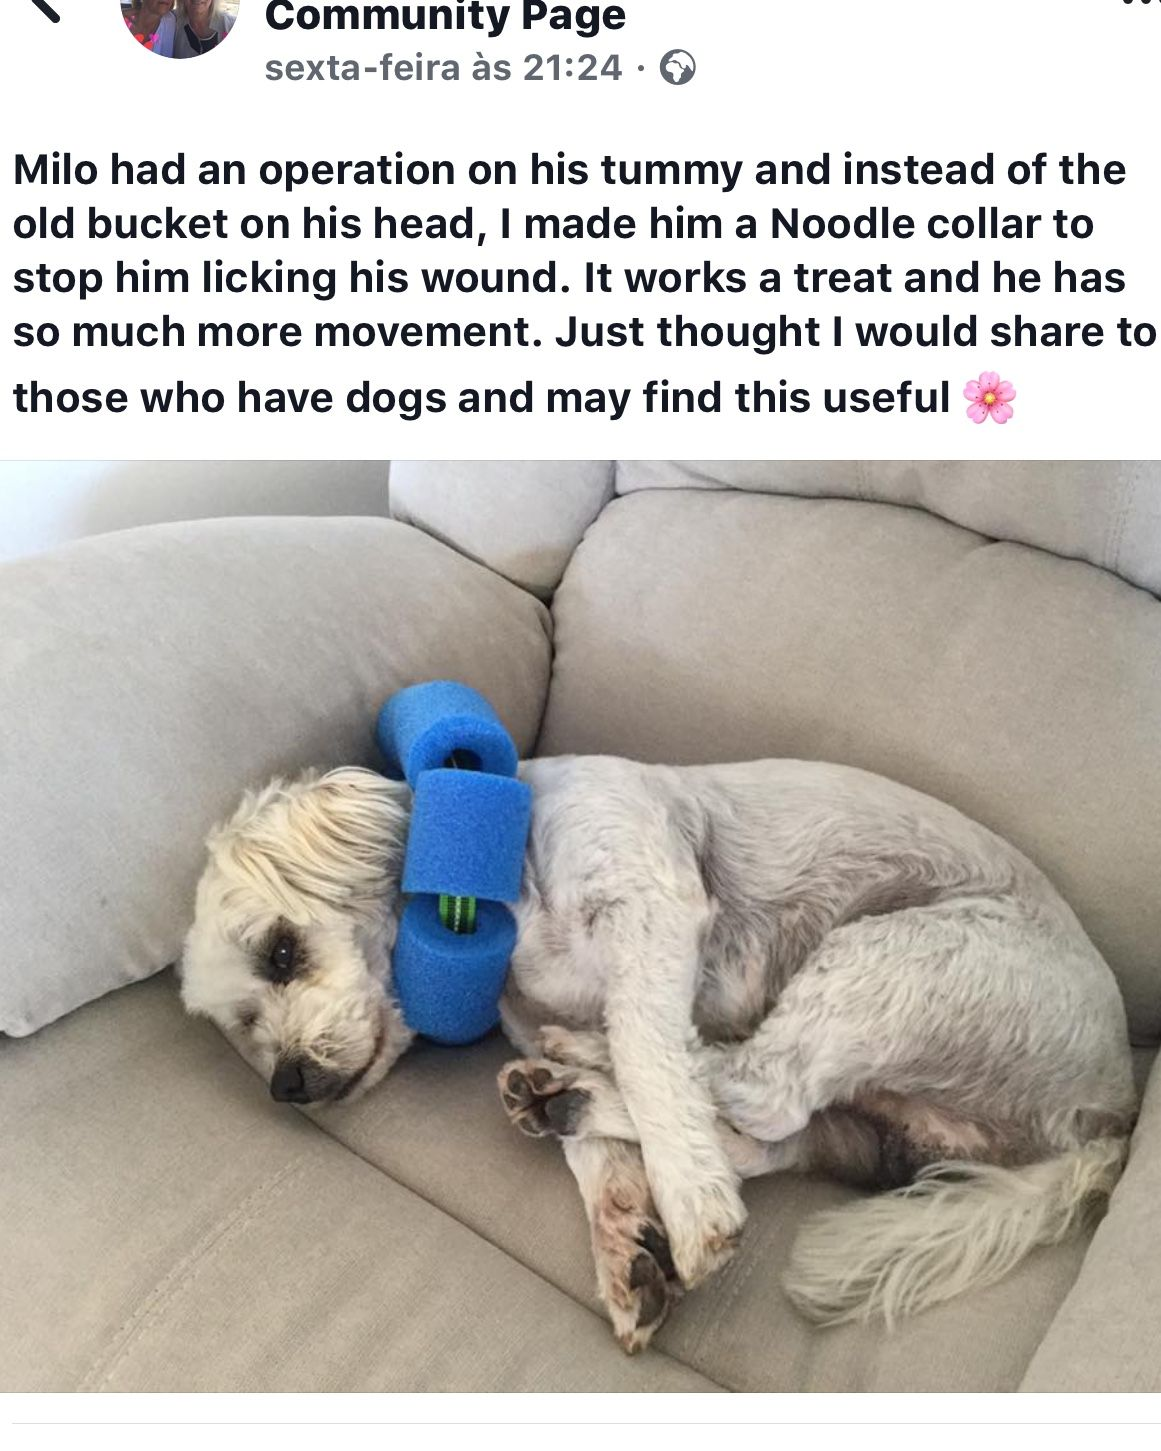 Noodle Necklace For Dogs After Surgery Brilliant Dogs Dog